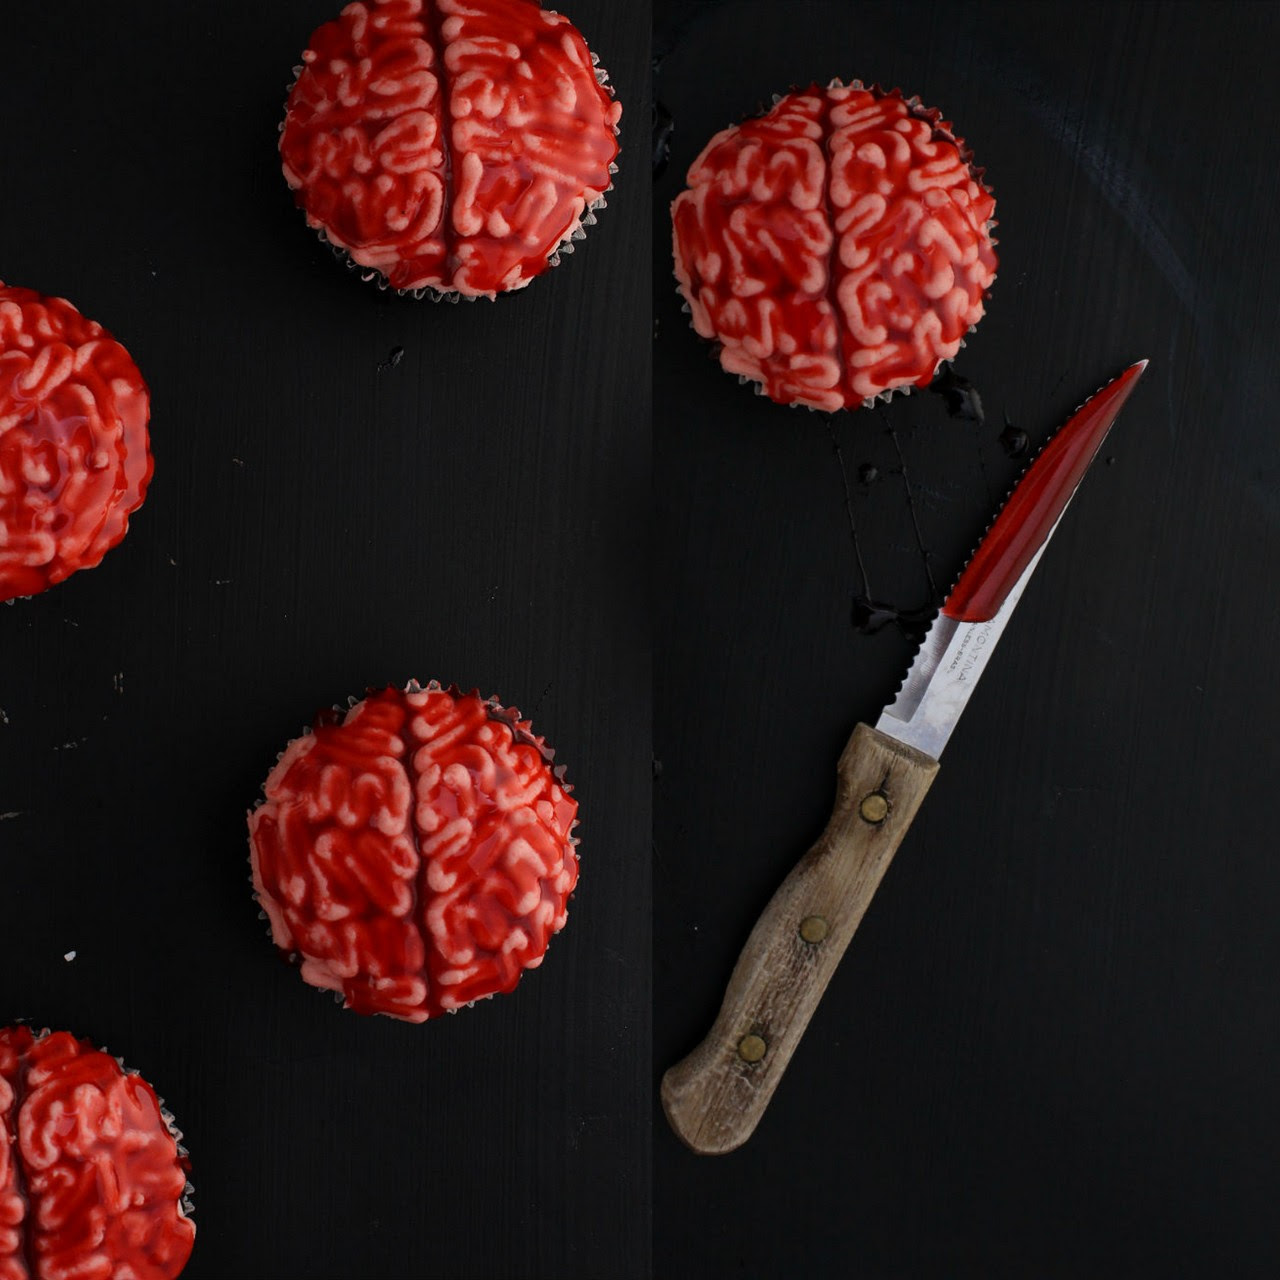 DIY Brains Cupcakes from The Simple Sweet Life